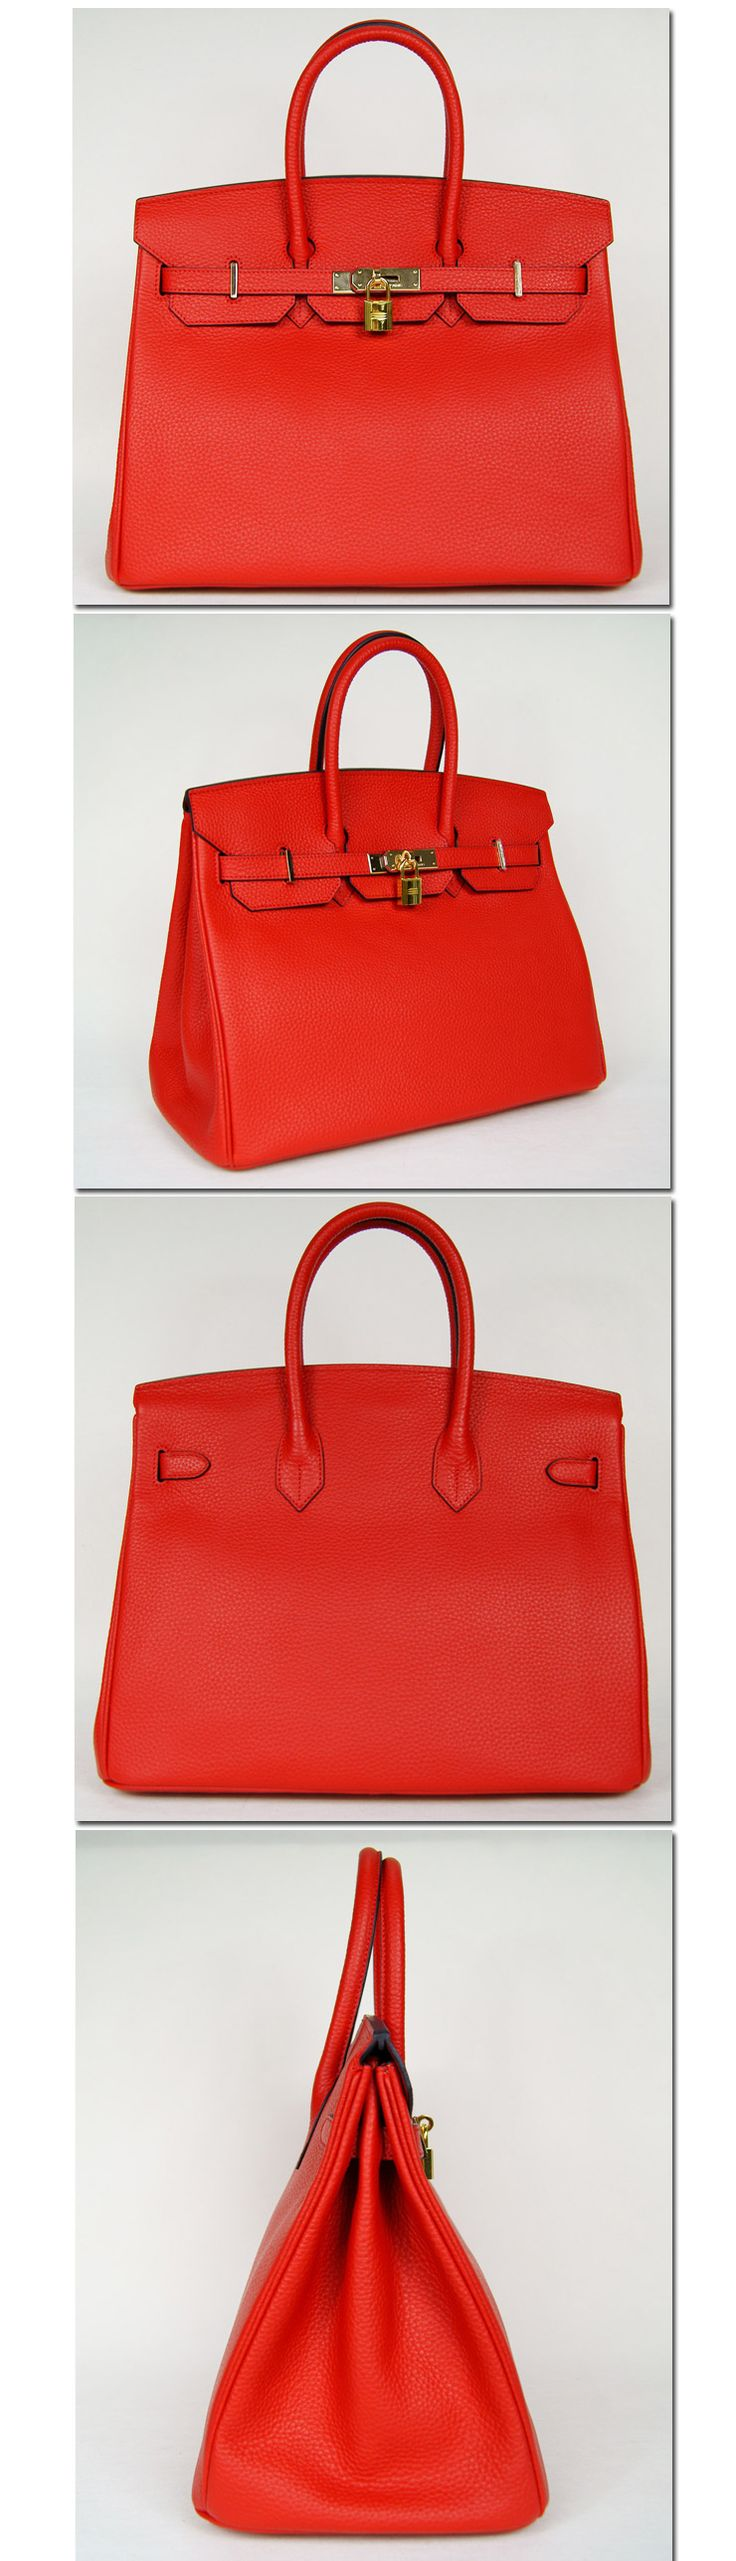 Hermes Birkin Bag- the most beautiful, most expensive bag I will ever want. I must have it one day.